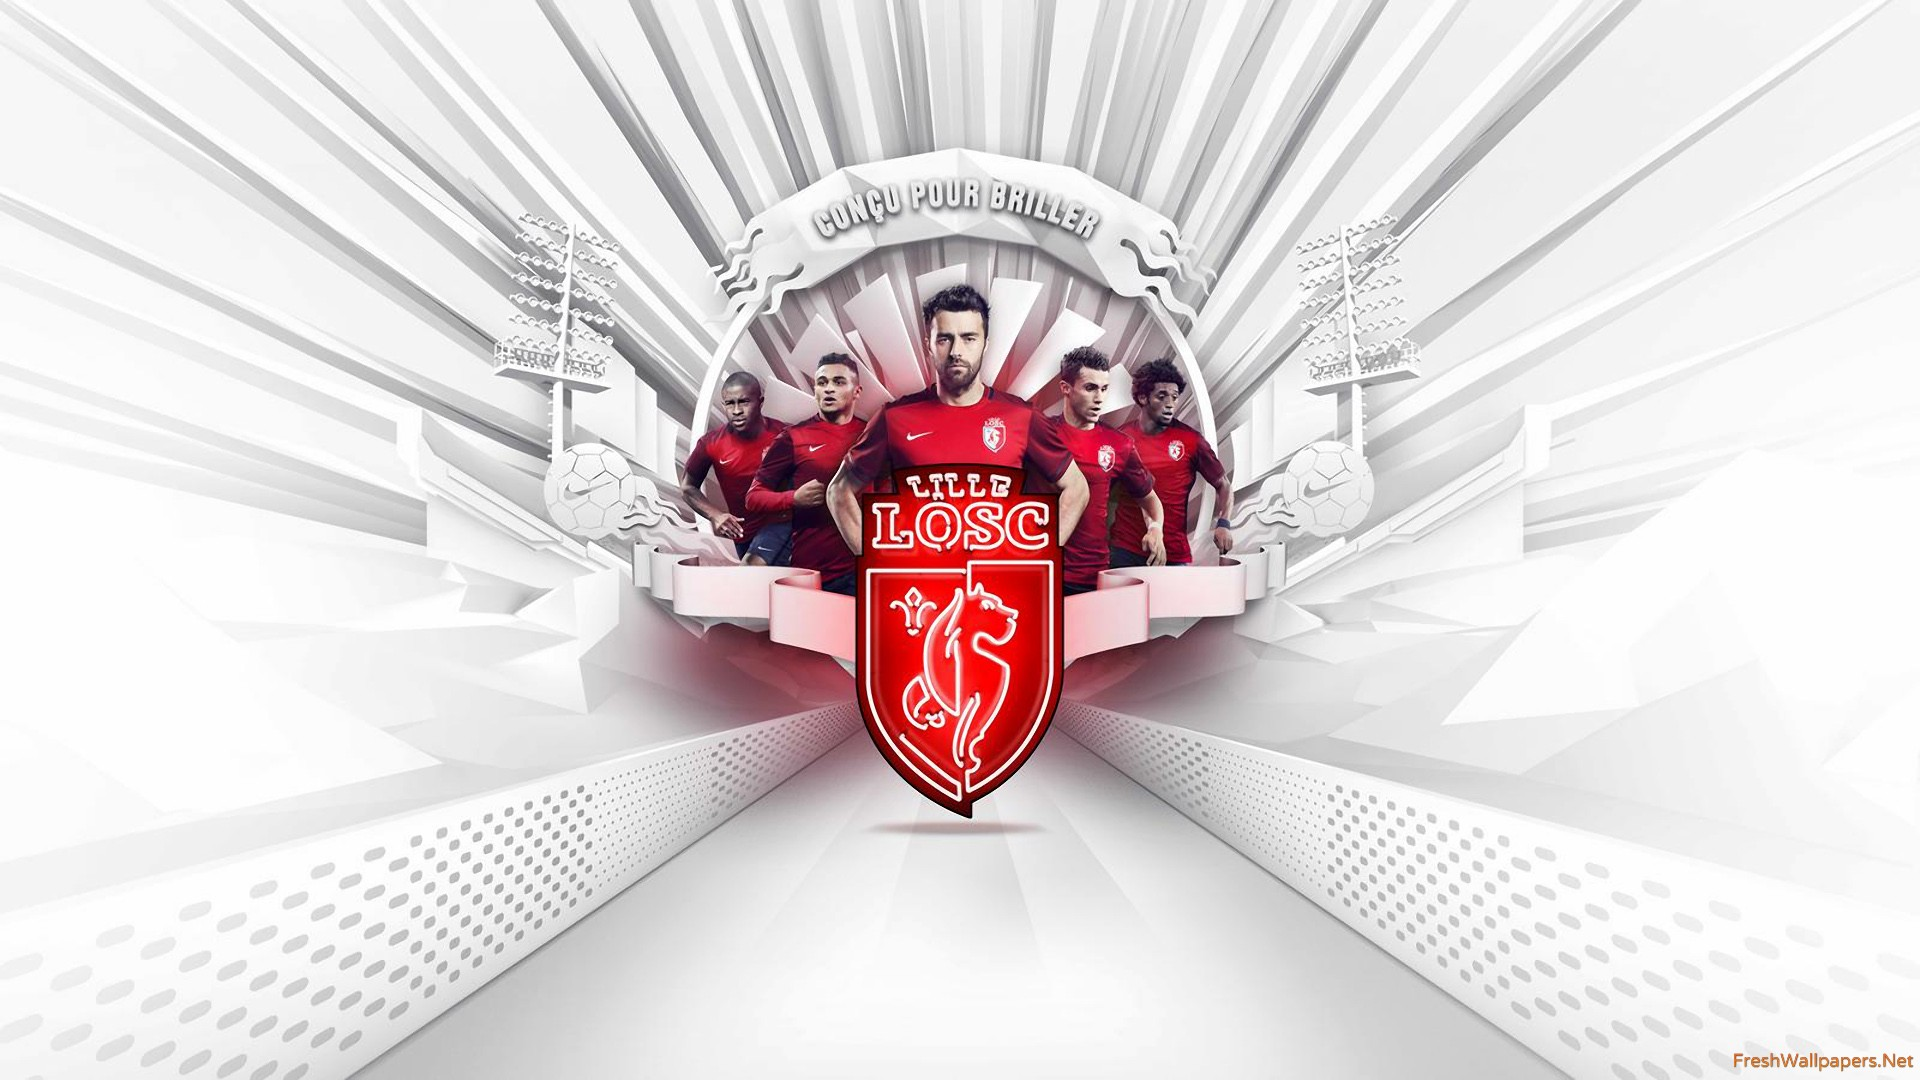 1920x1080 - Lille OSC Wallpapers 12